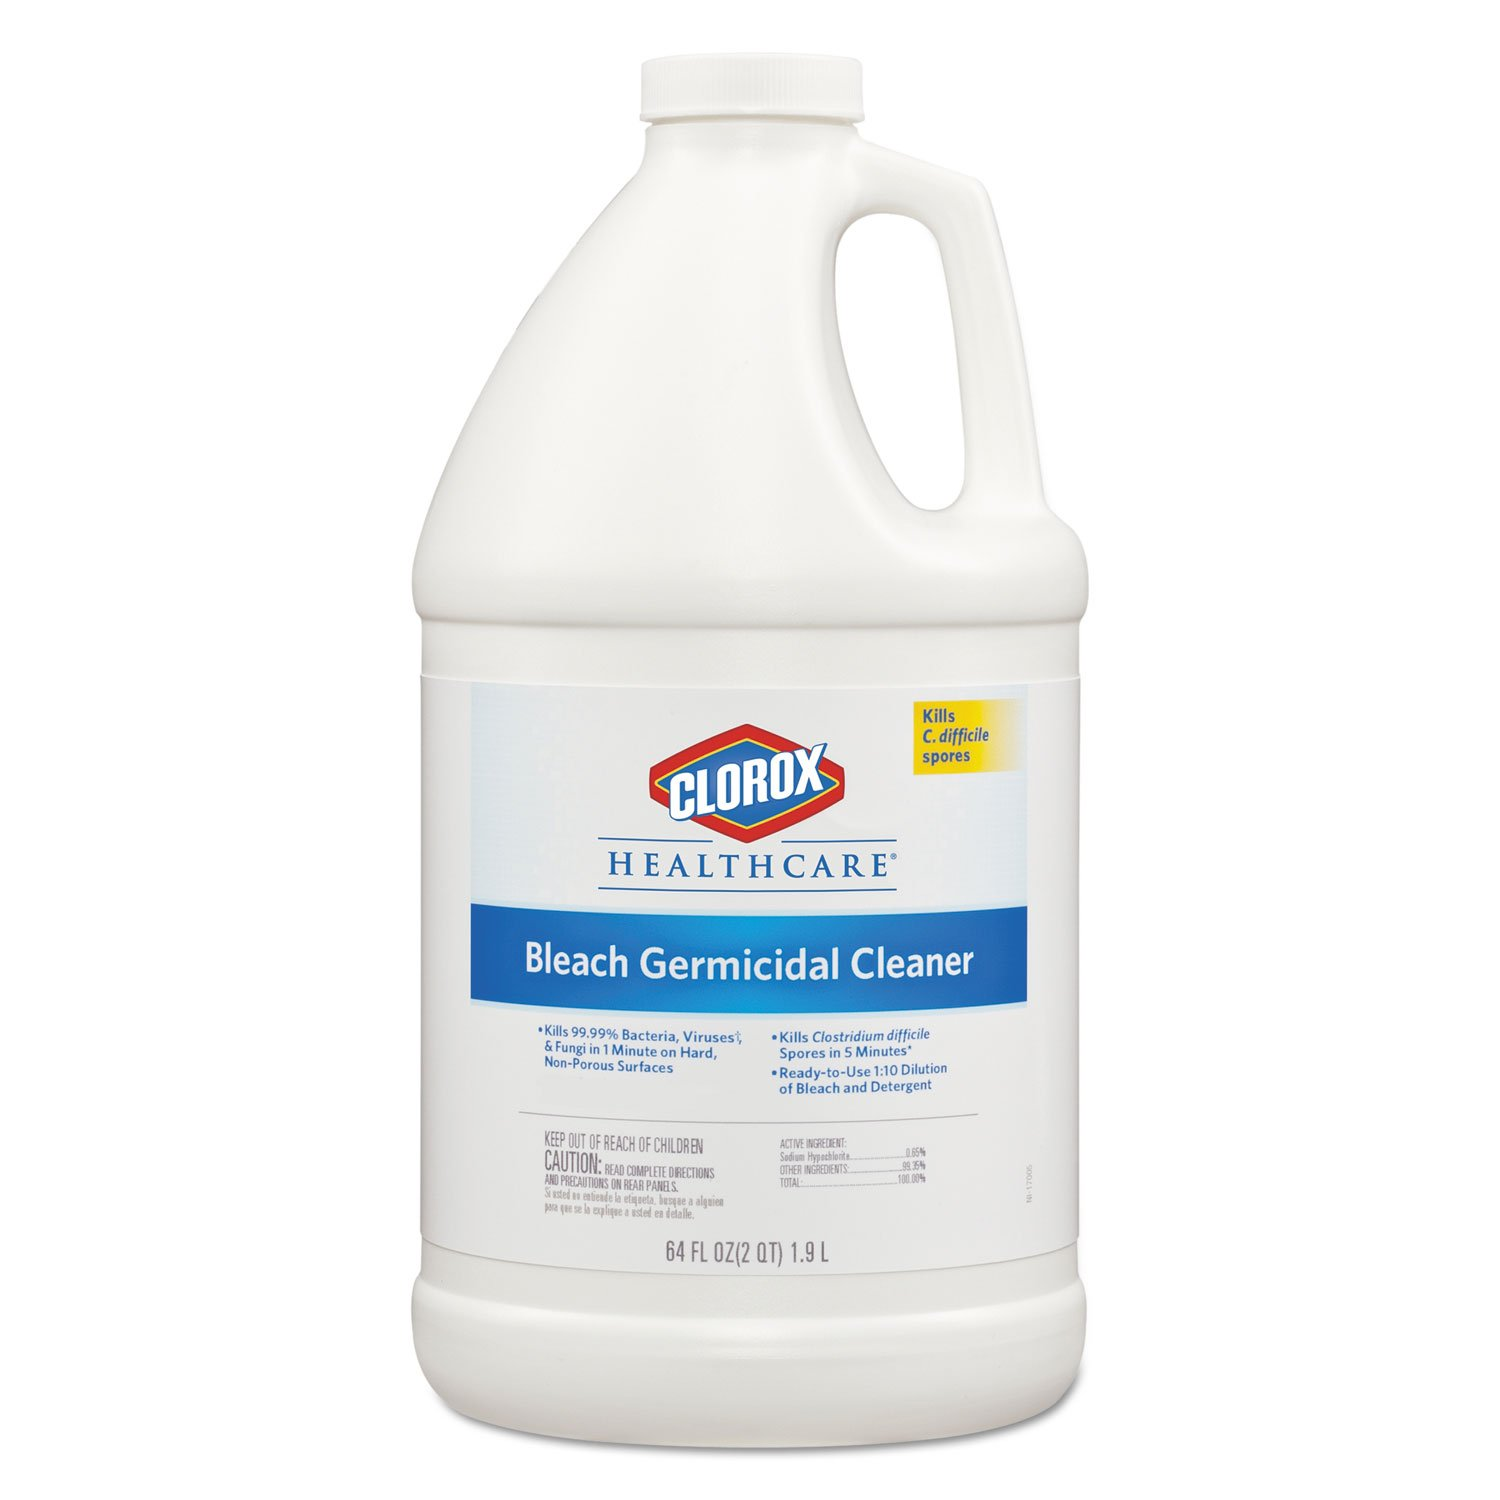 Clorox Healthcare 68973EA Hospital Cleaner Disinfectant w/Bleach 2qt Refill